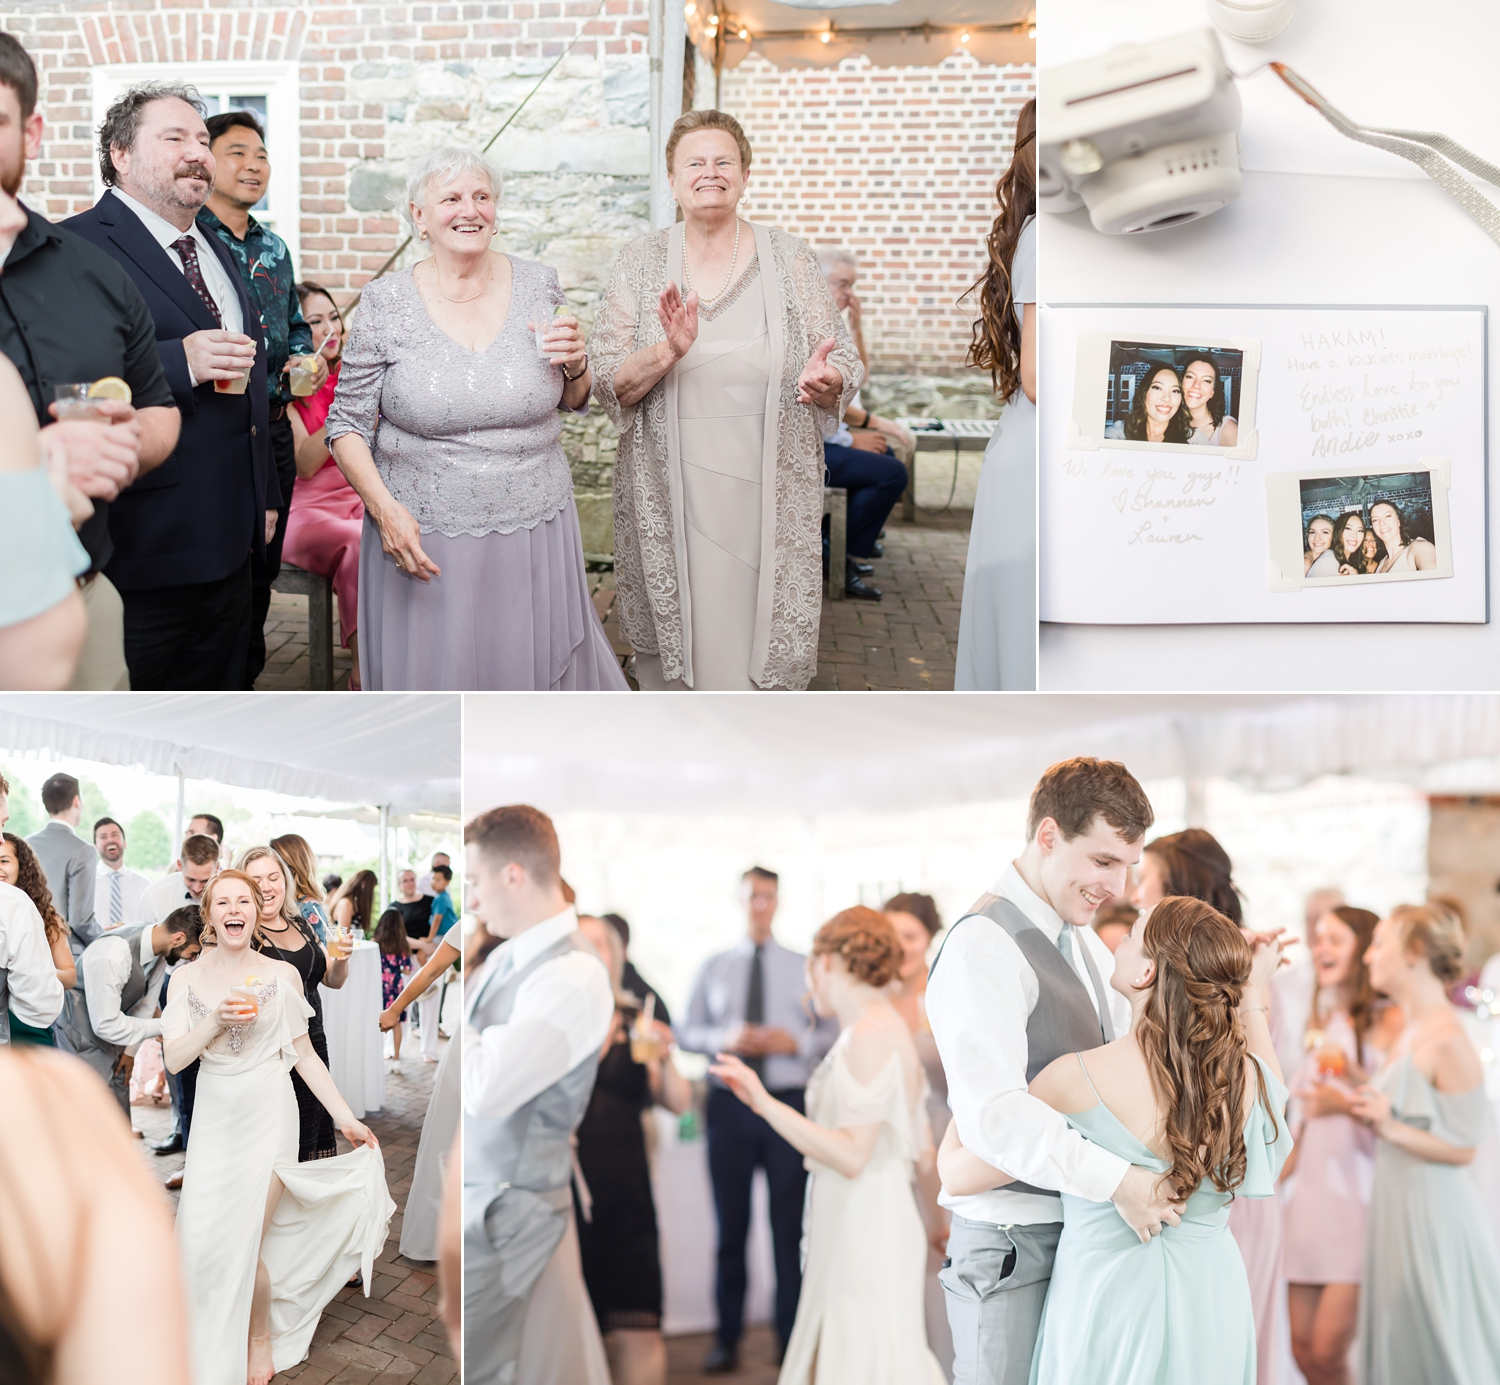 HOFFMAN WEDDING HIGHLIGHTS-440_William-Paca-House-Annapolis-Maryland-wedding-photographer-anna-grace-photography-photo.jpg